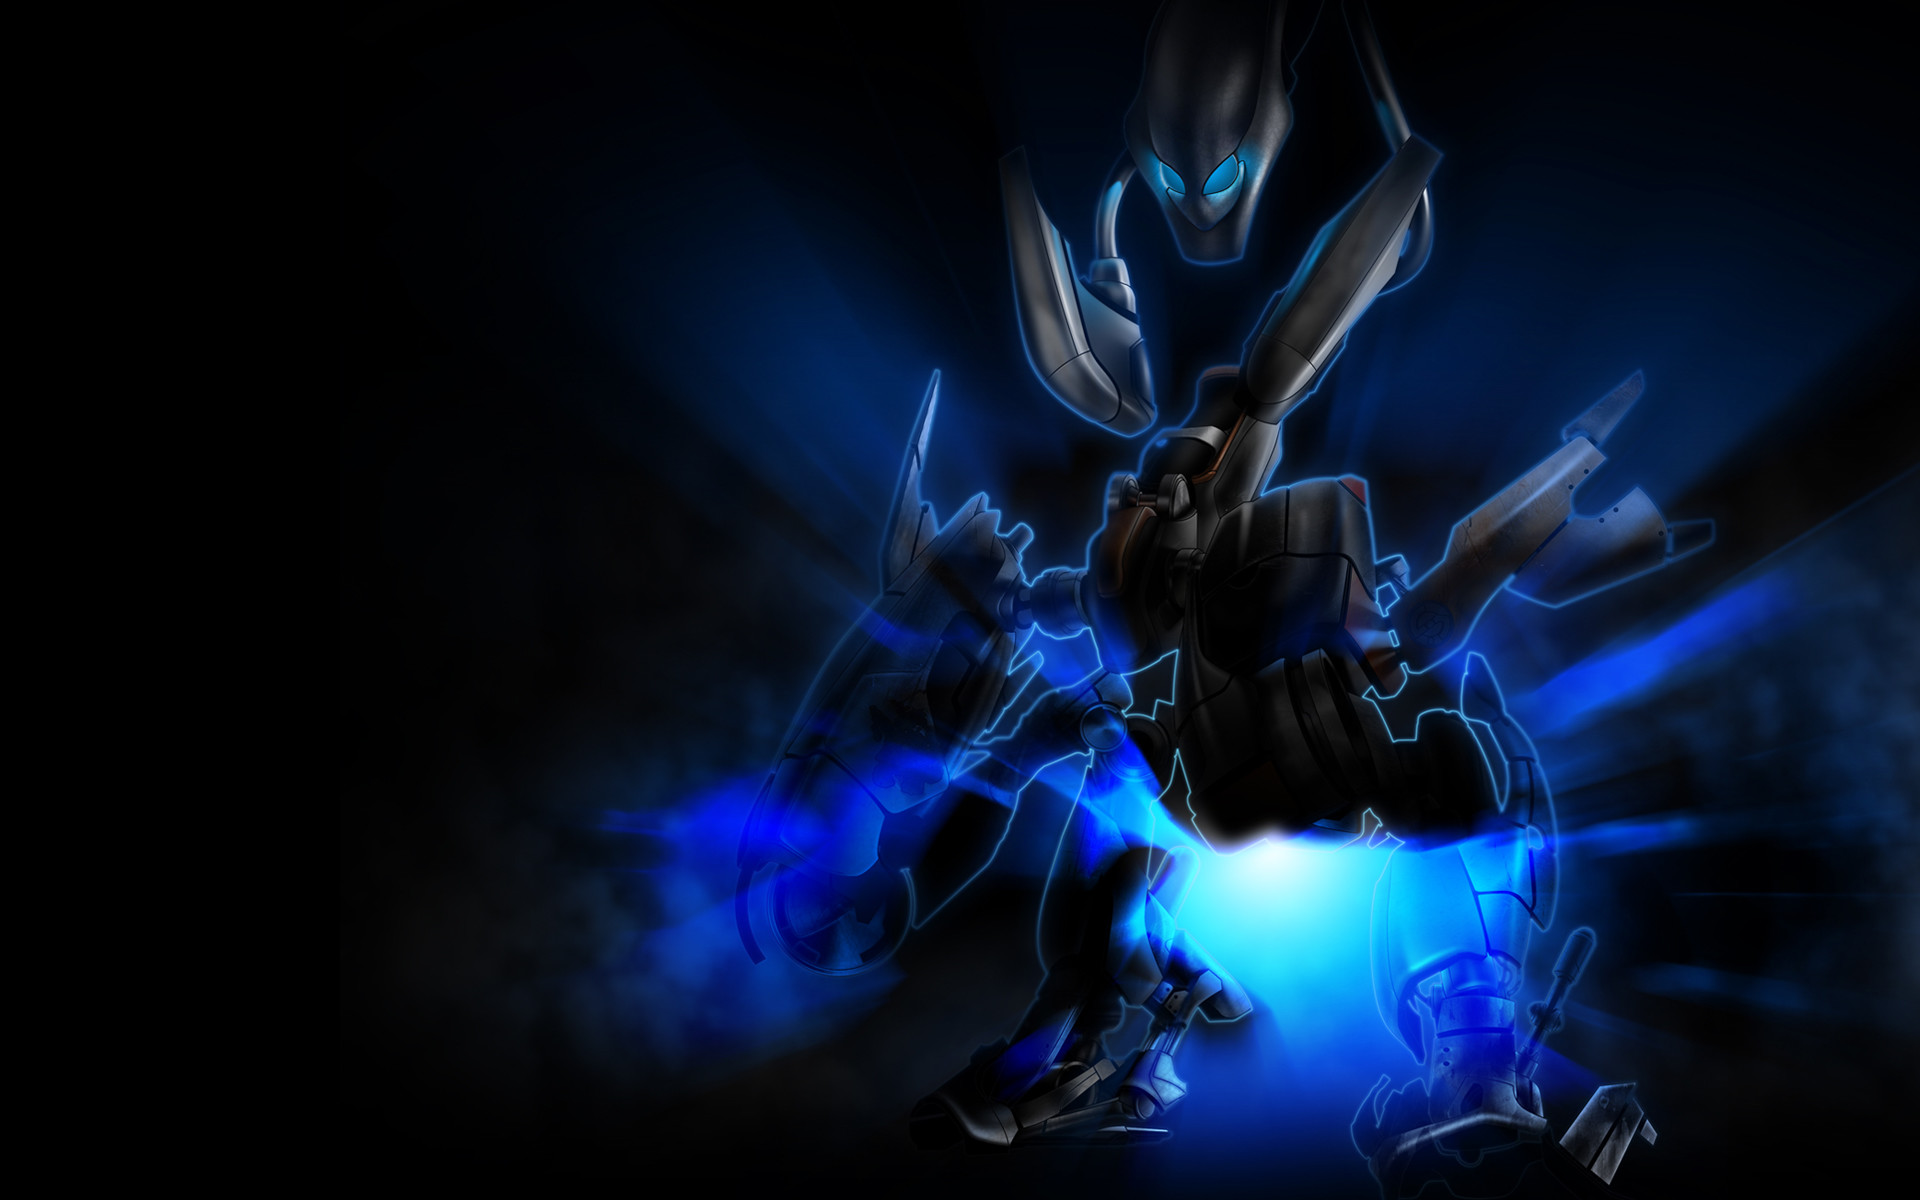 Alienware wallpapers for windows 7 wallpapersafari - 1920x1200 Alienware Hd Wallpapers Wallpaper Cave